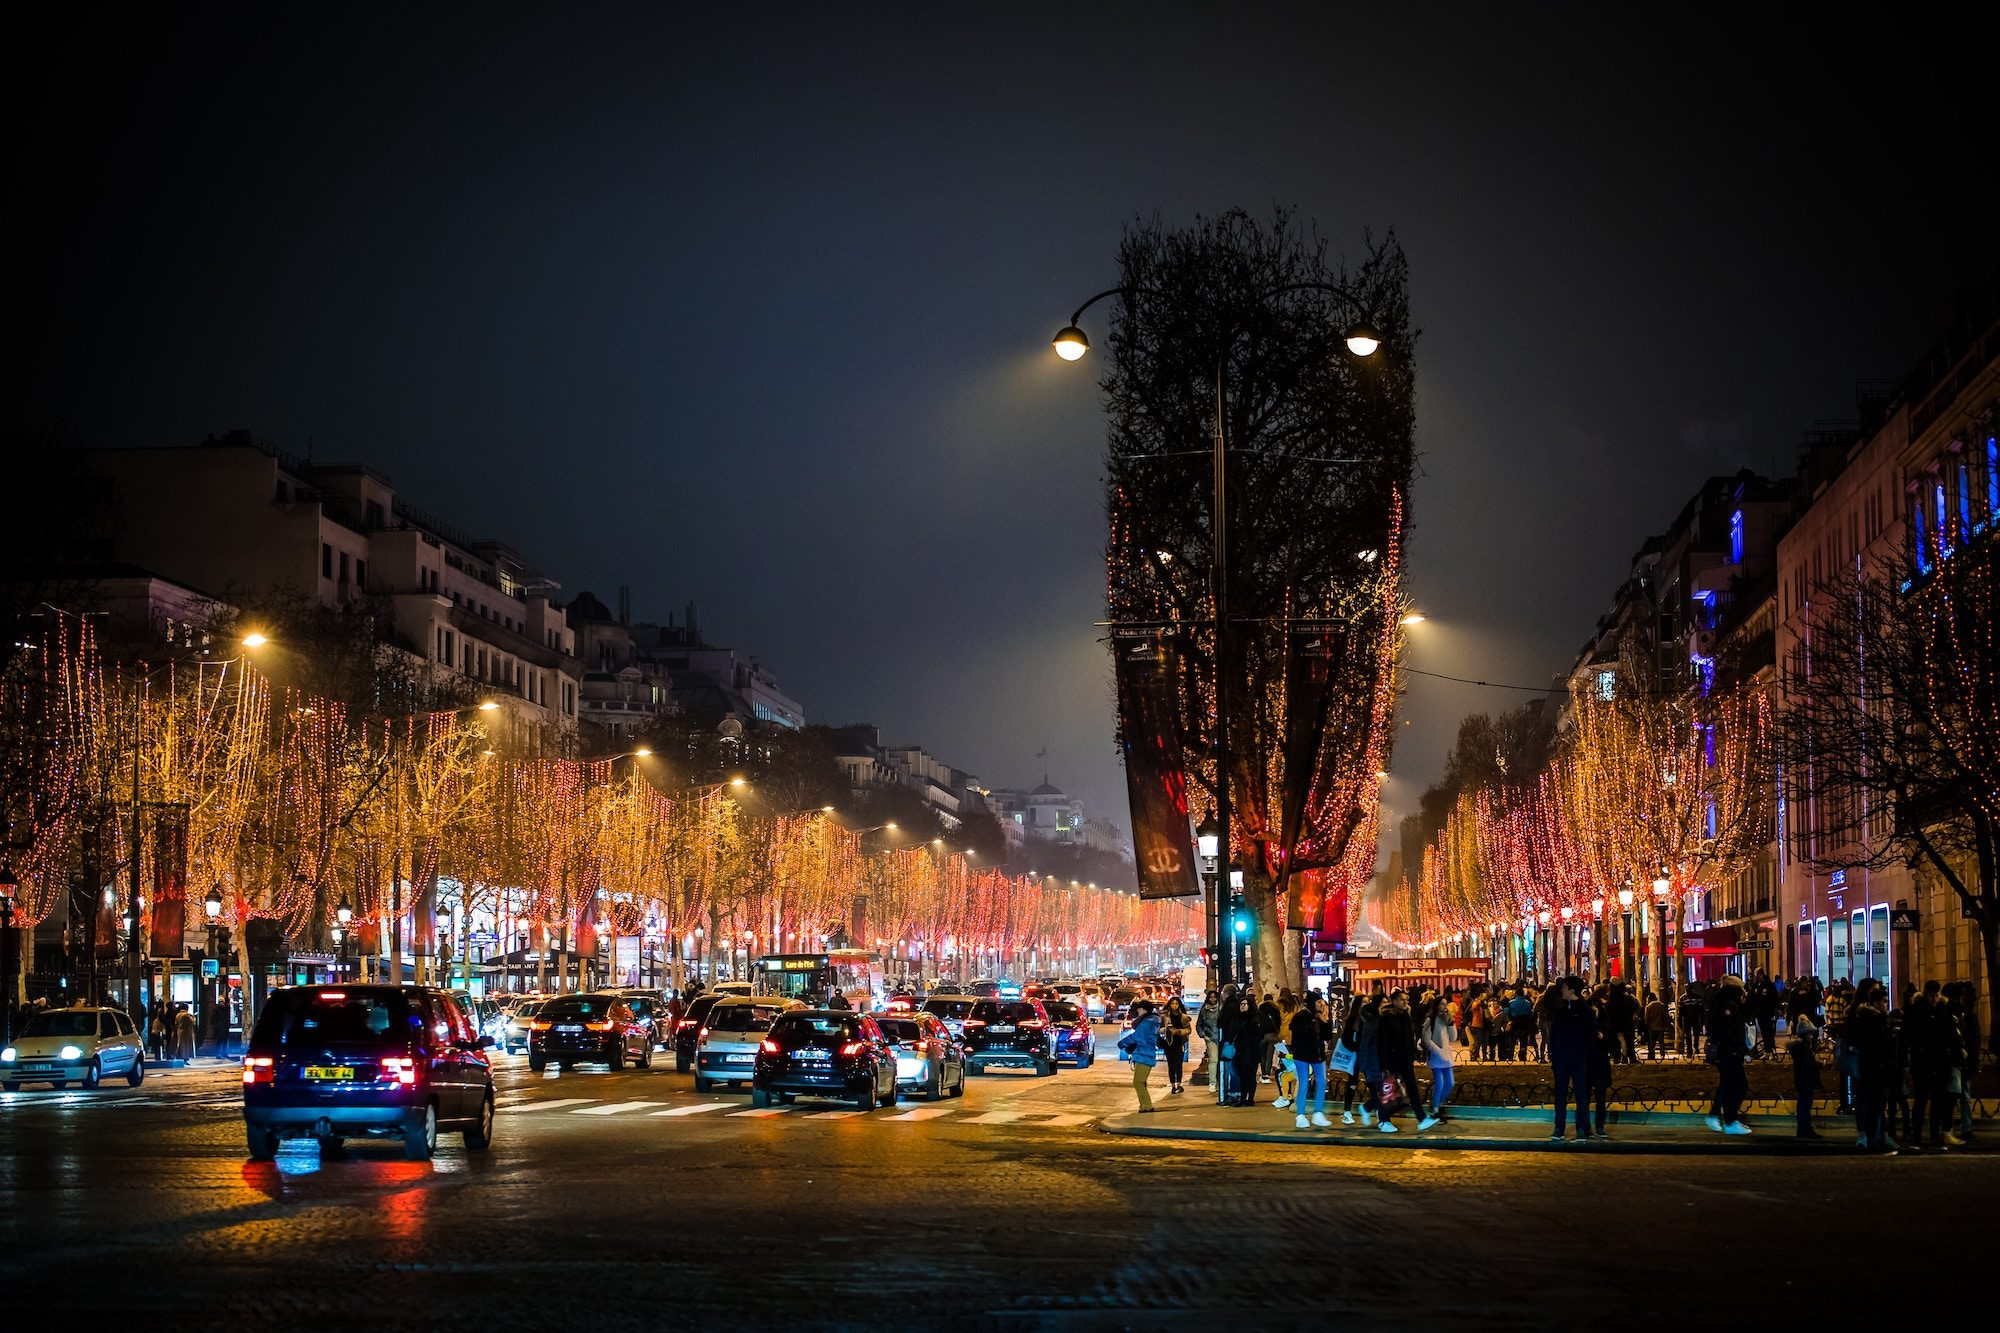 A night scene of the Champs Elysées with its Christmas lights.